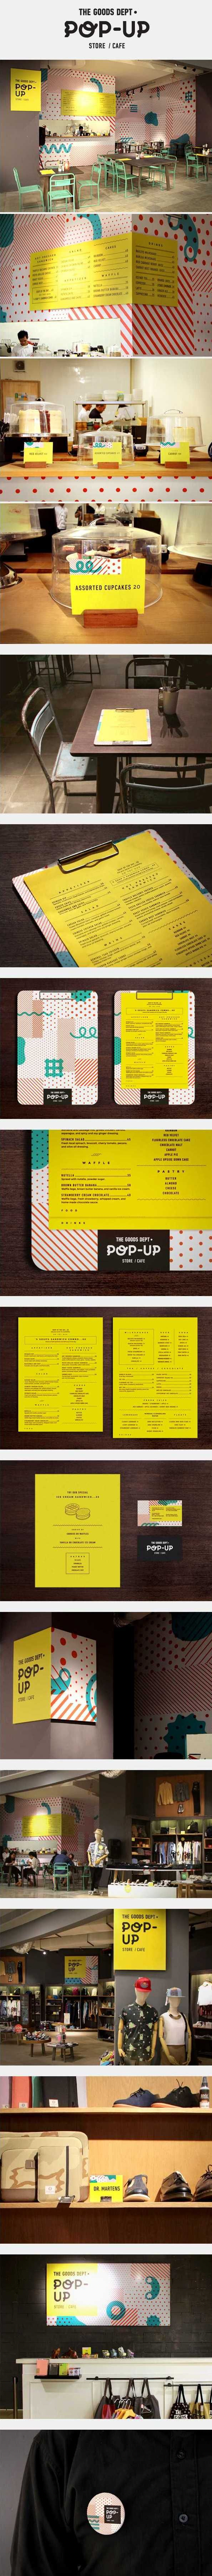 The Goods Dept Pop-Up Store/Cafe on Behance